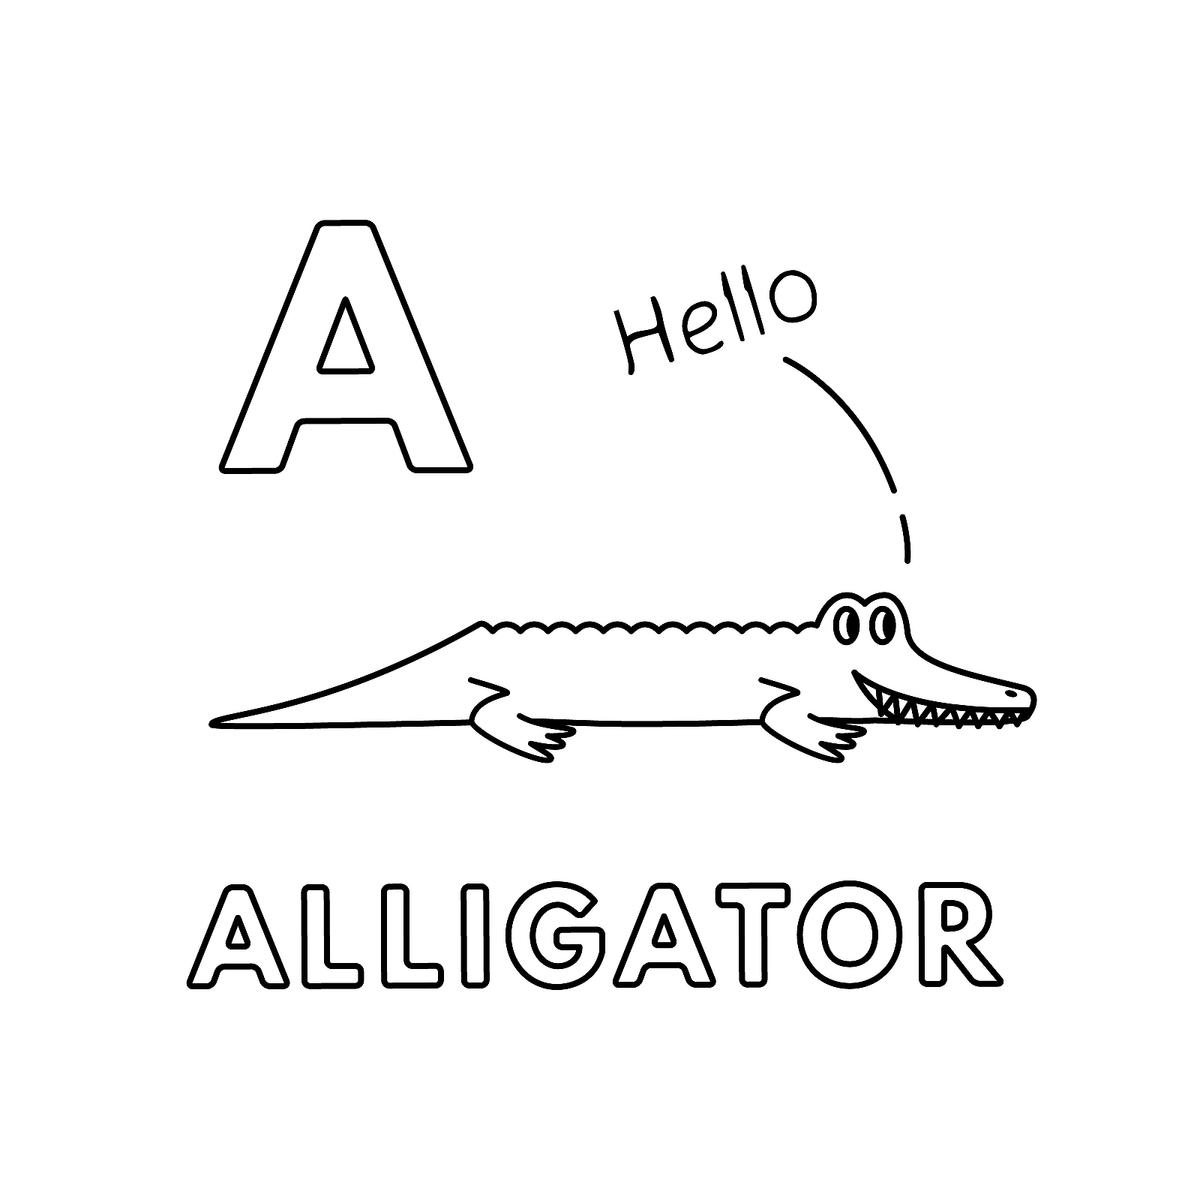 Alphabet Coloring Pages: Fun Printable Animal-Themed ...